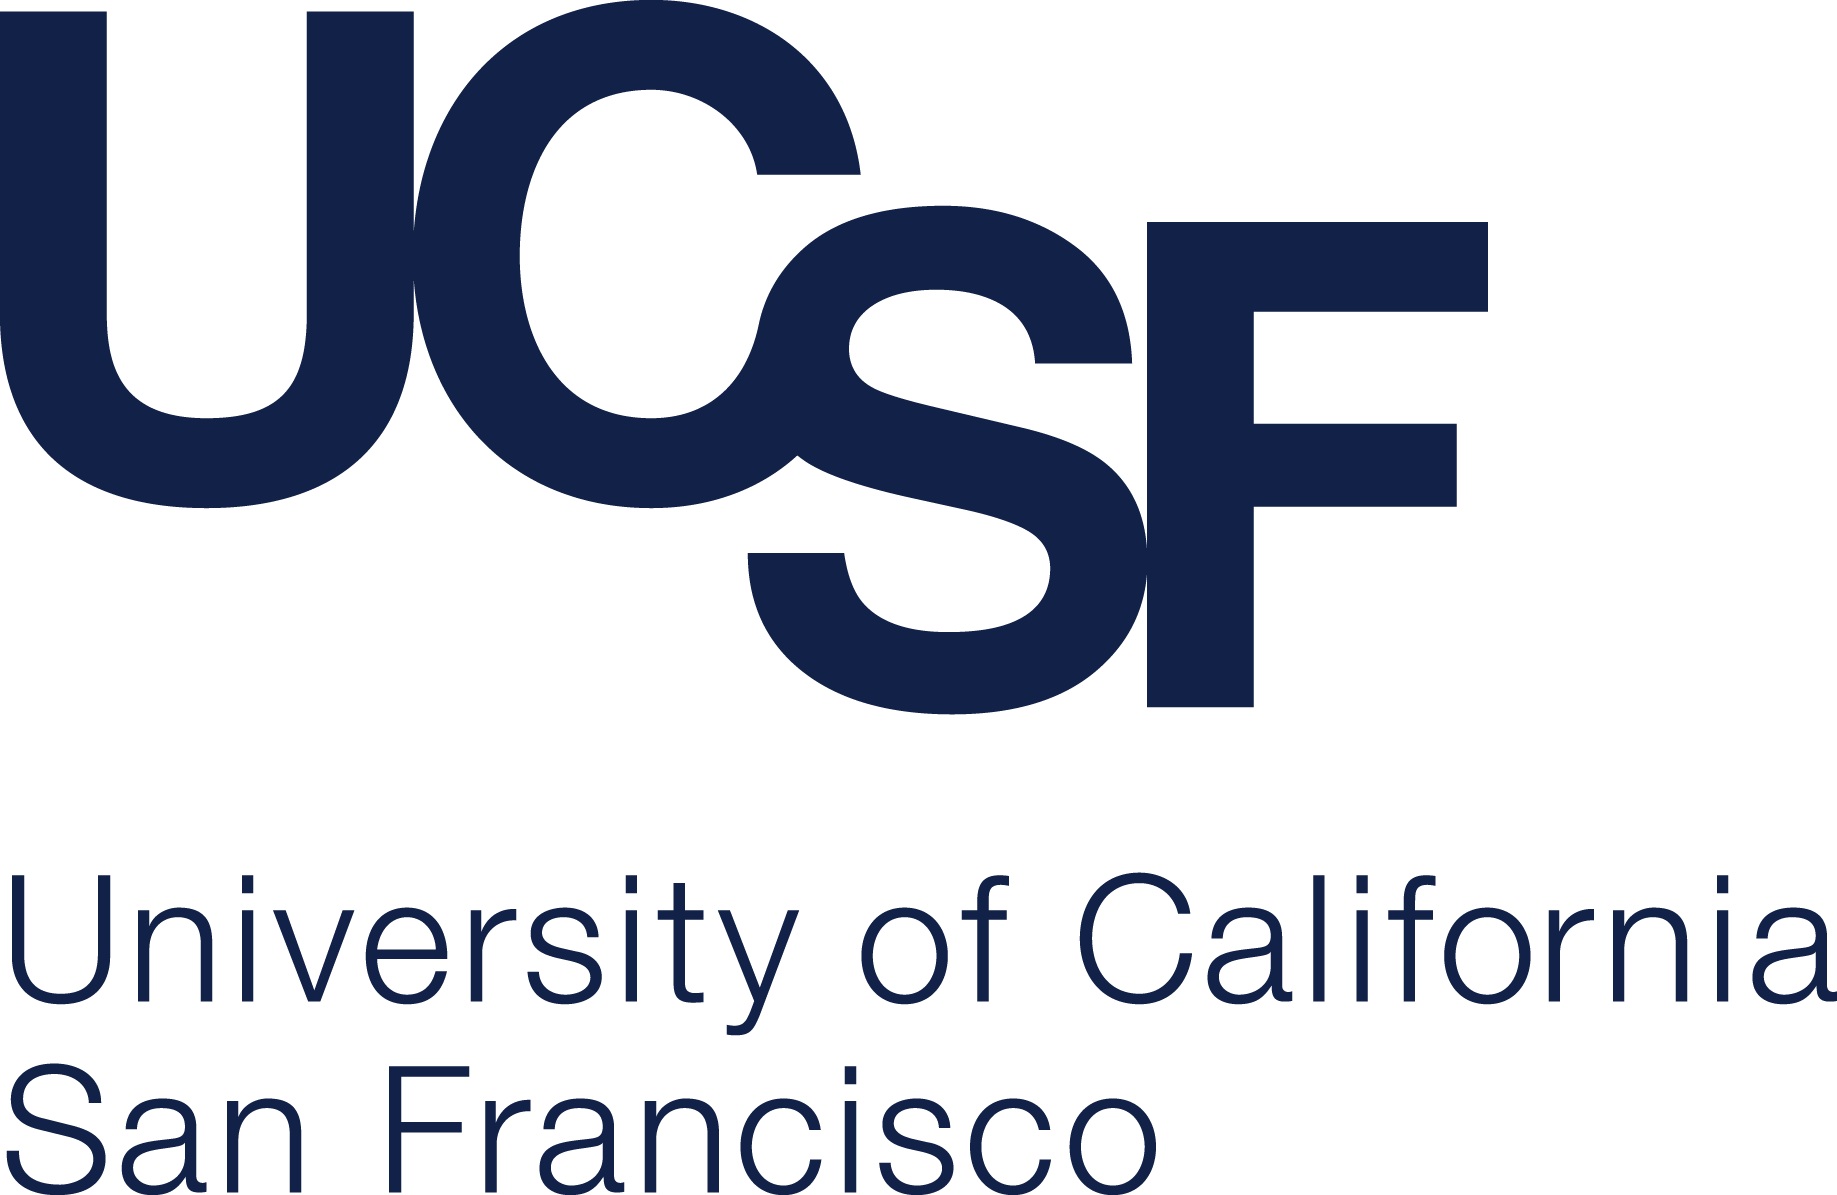 ucsf_logo-University-of-California-San-Francisco.png